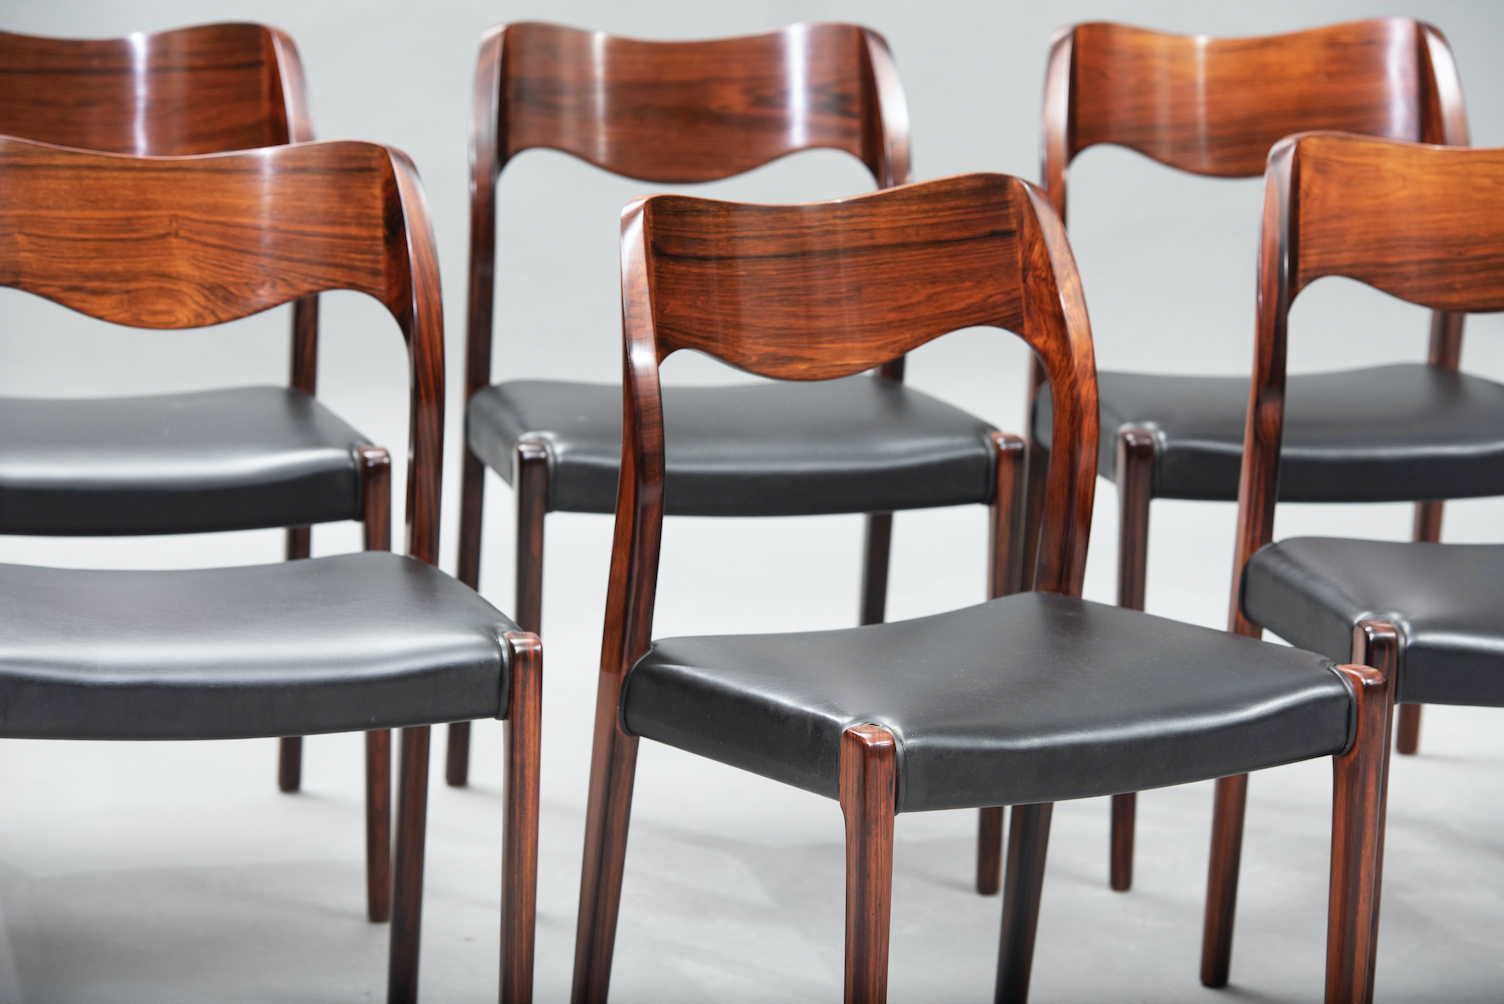 N.O. Moller 71 model dining chairs | 7